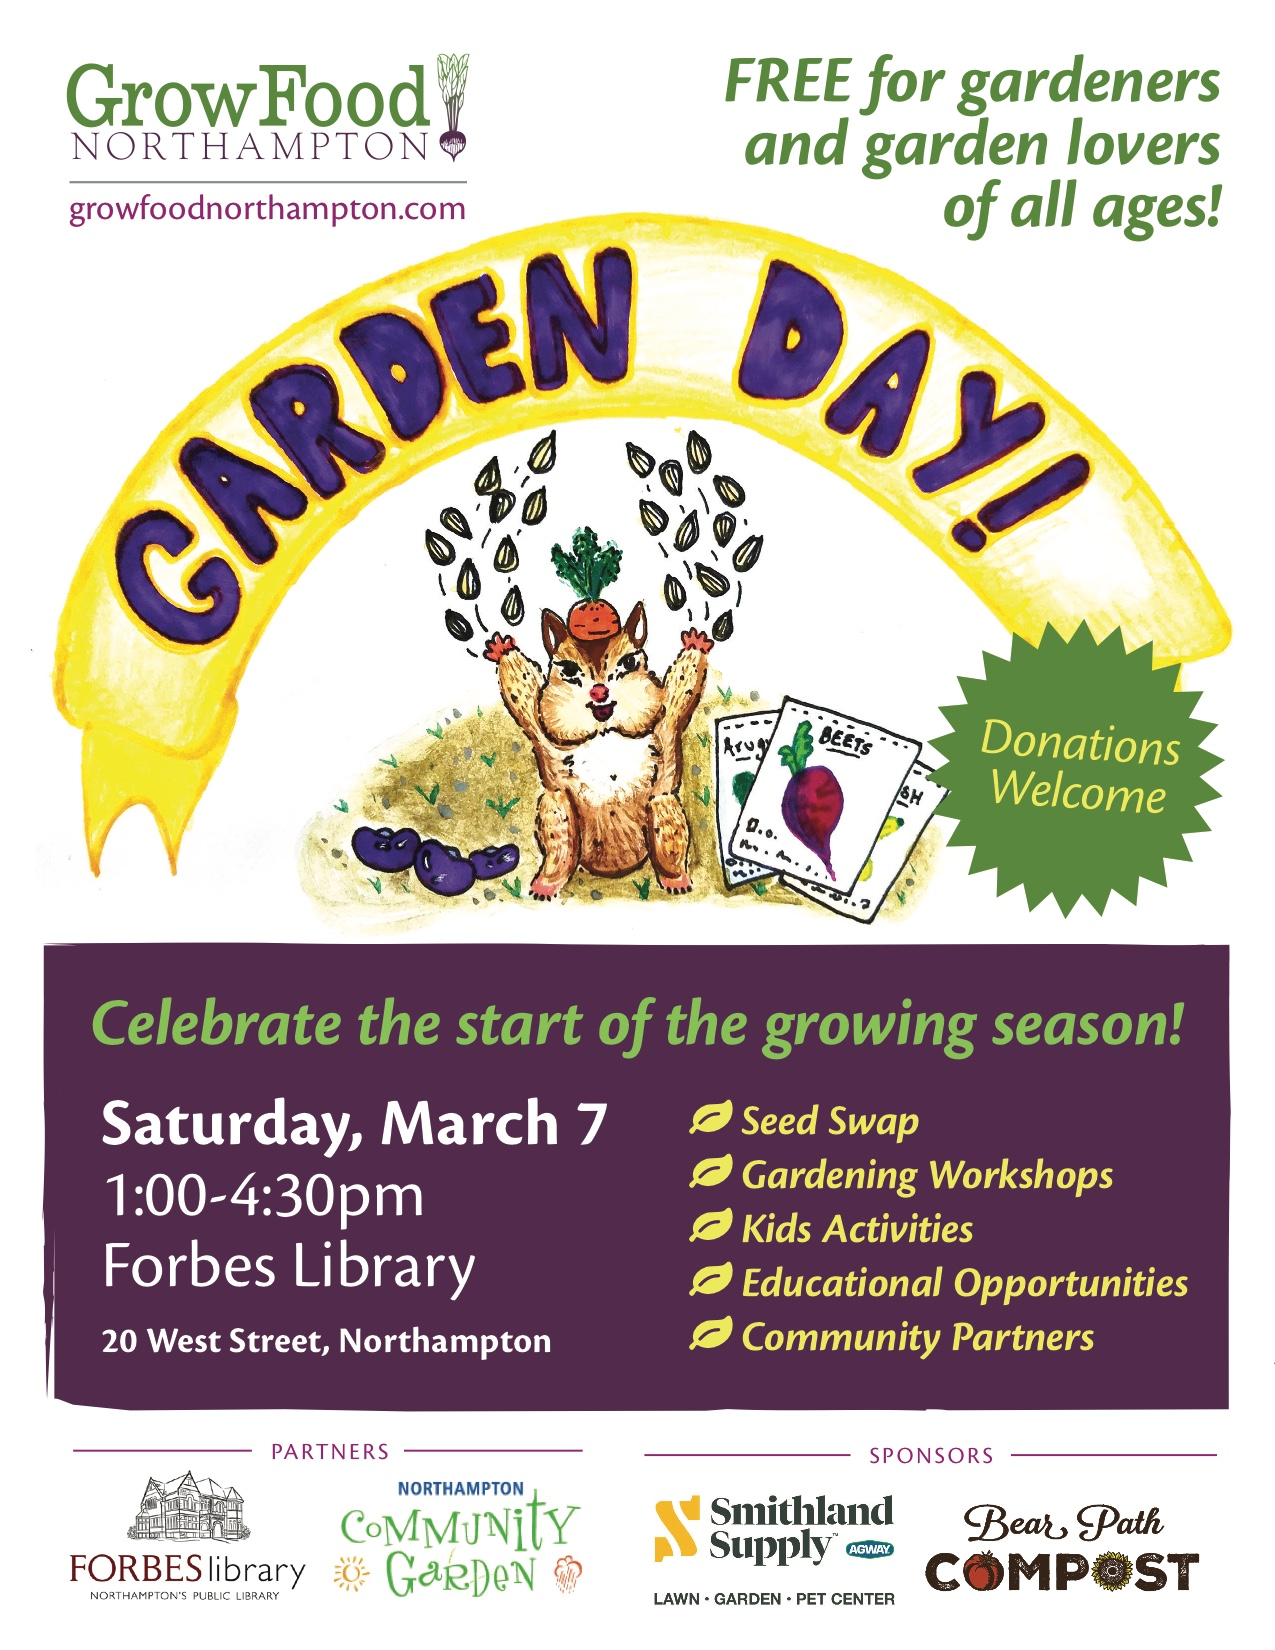 March 7, 2020: Celebrate The Start Of The Growing Season At Garden Day!